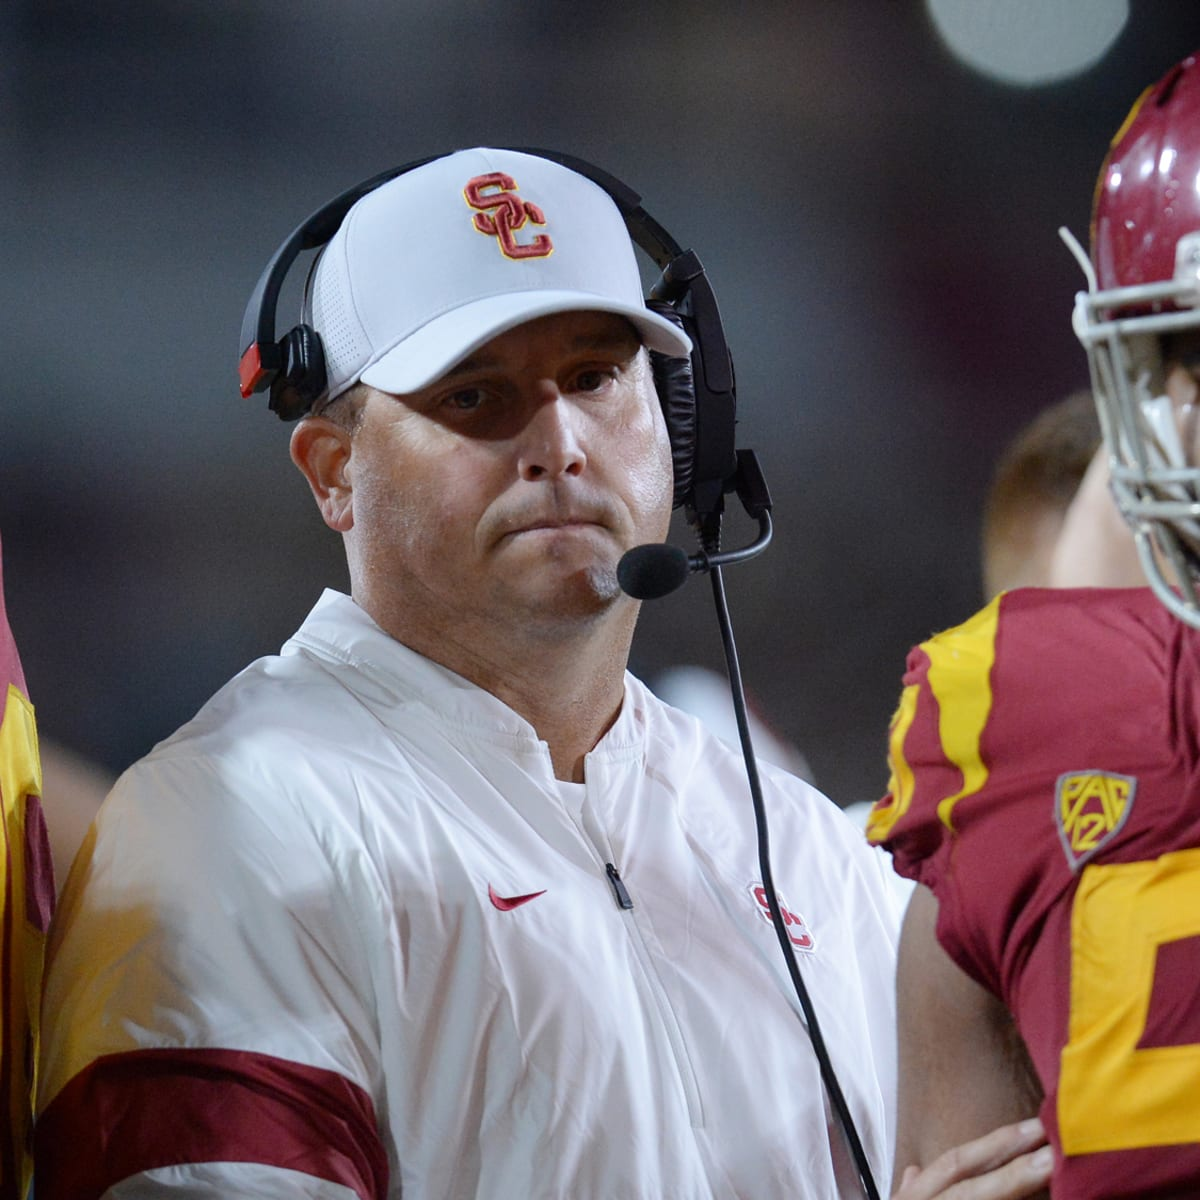 Sources Usc Disputes Report Head Coach Clay Helton Is Being Fired Sports Illustrated